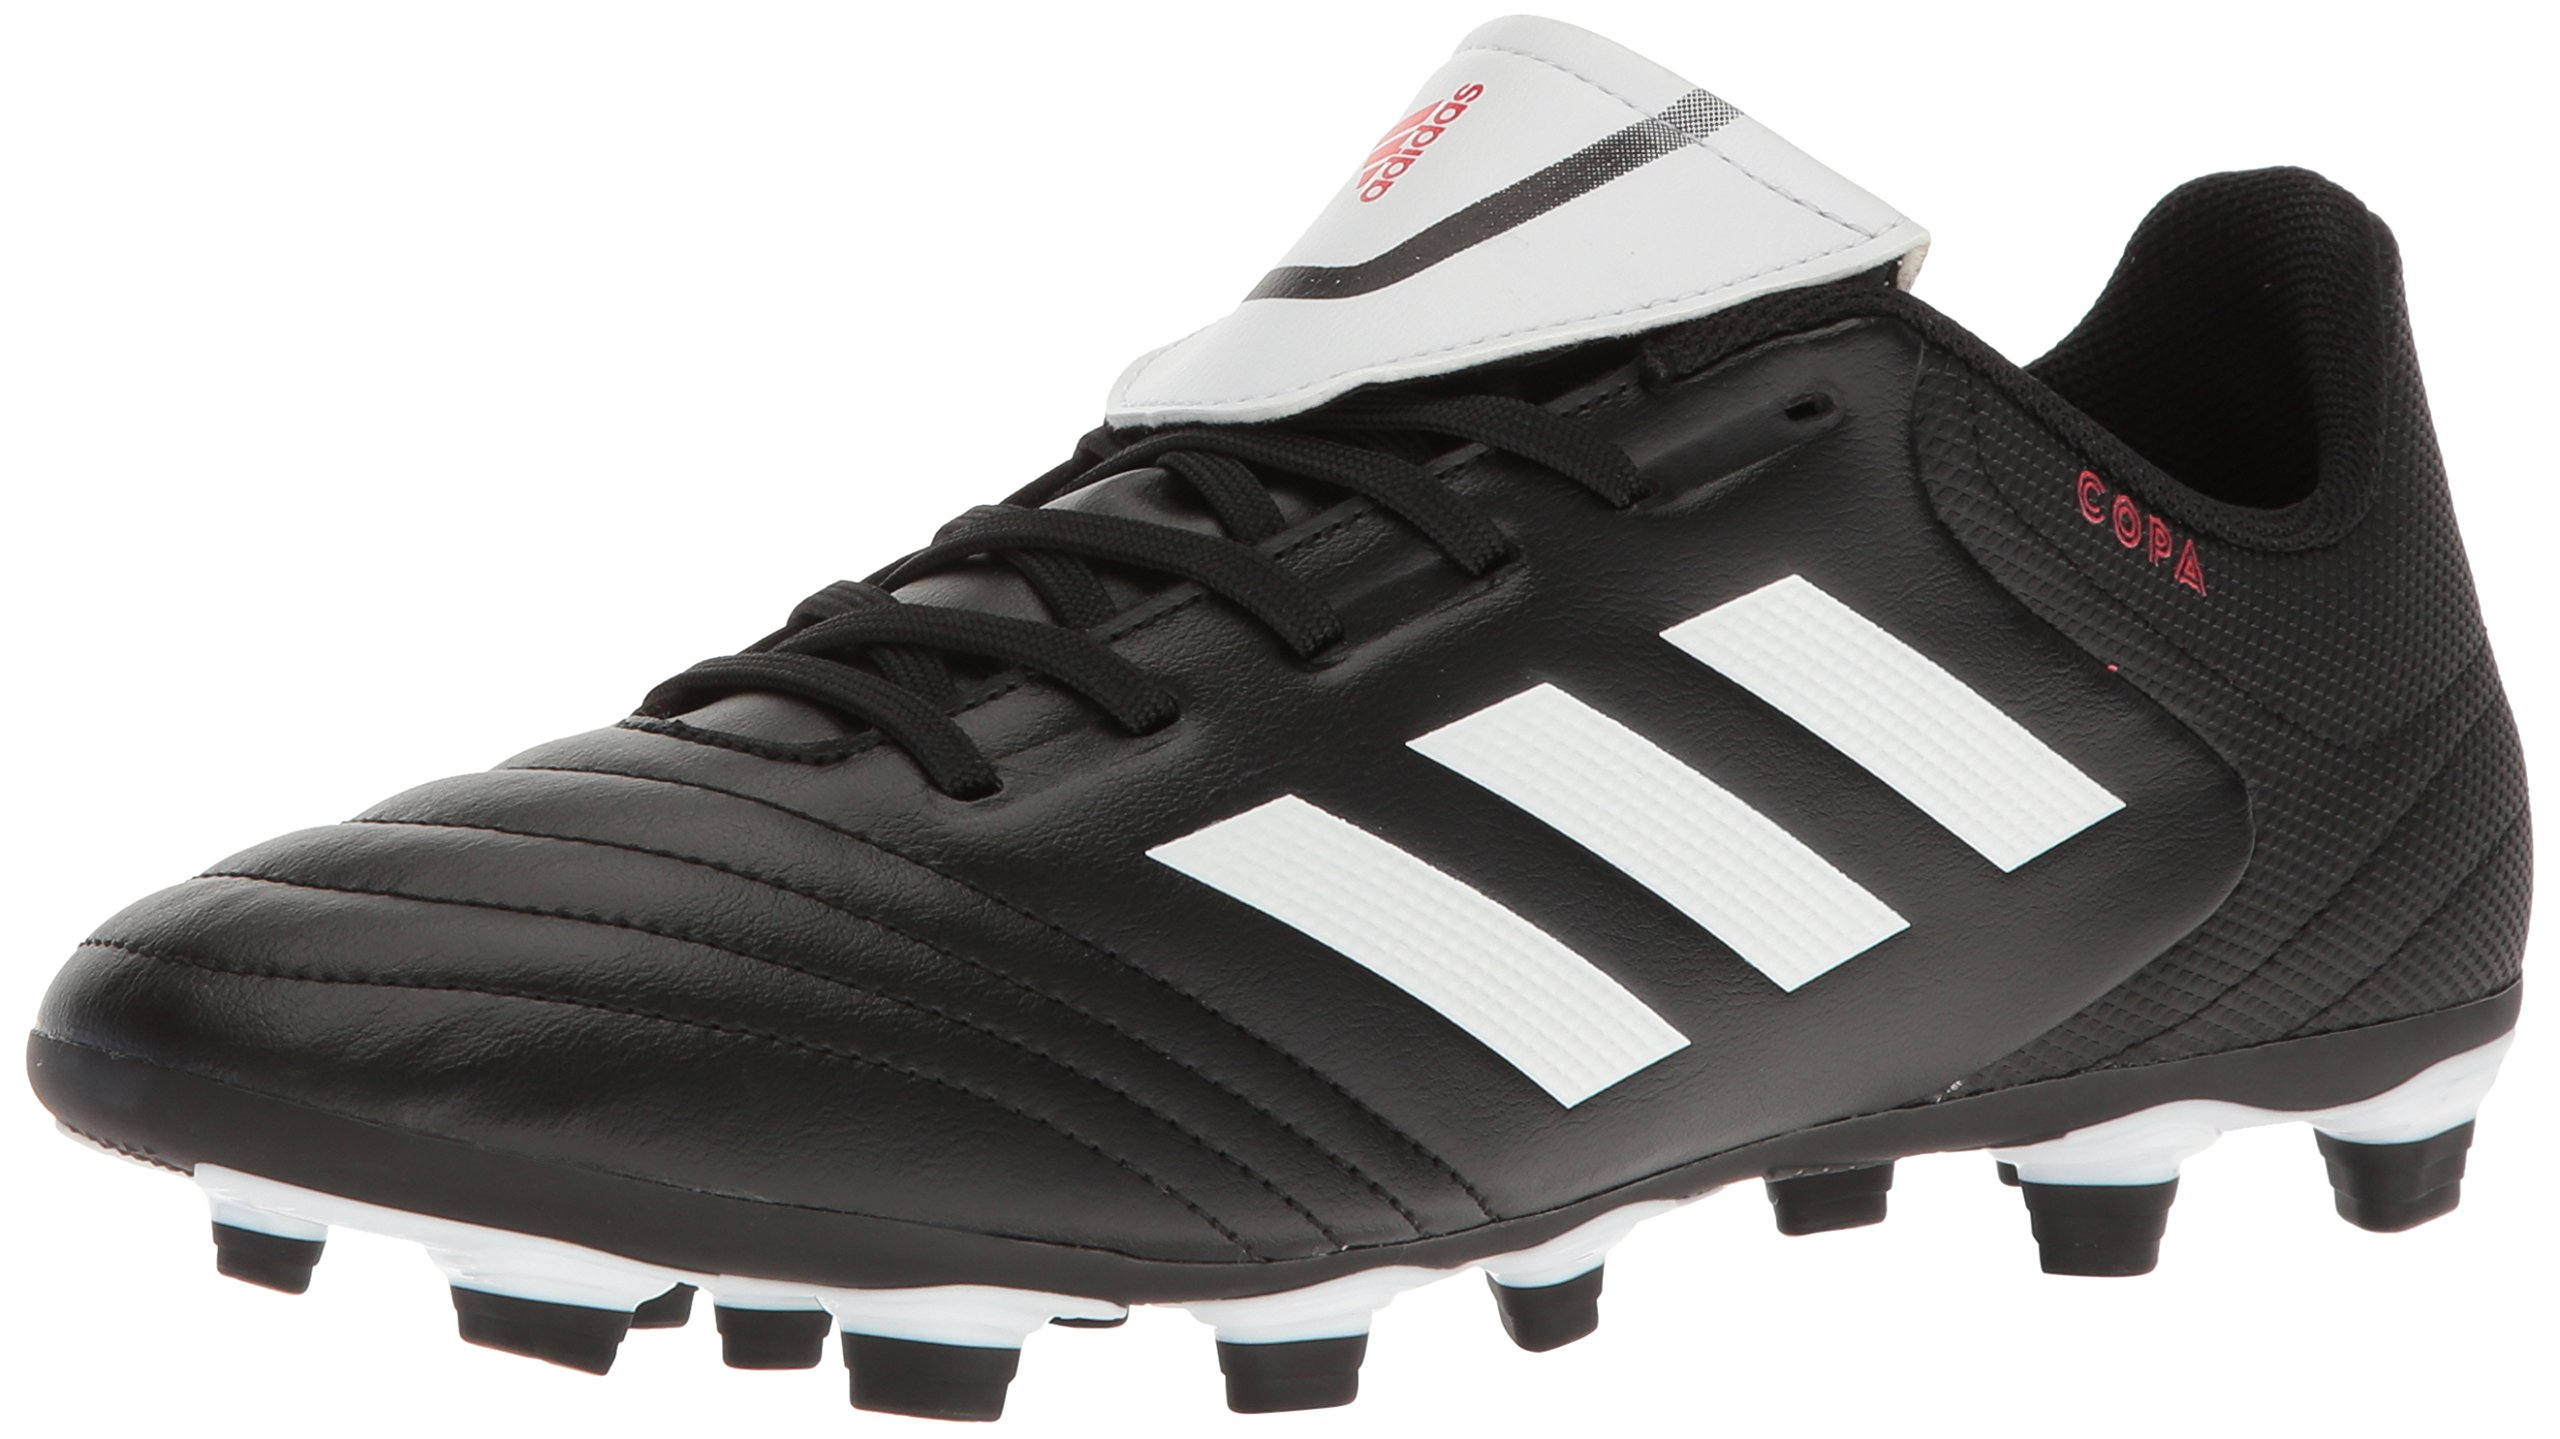 adidas Men's Copa 17.4 FxG Soccer Shoe, Black/White/Black, (12 M US)